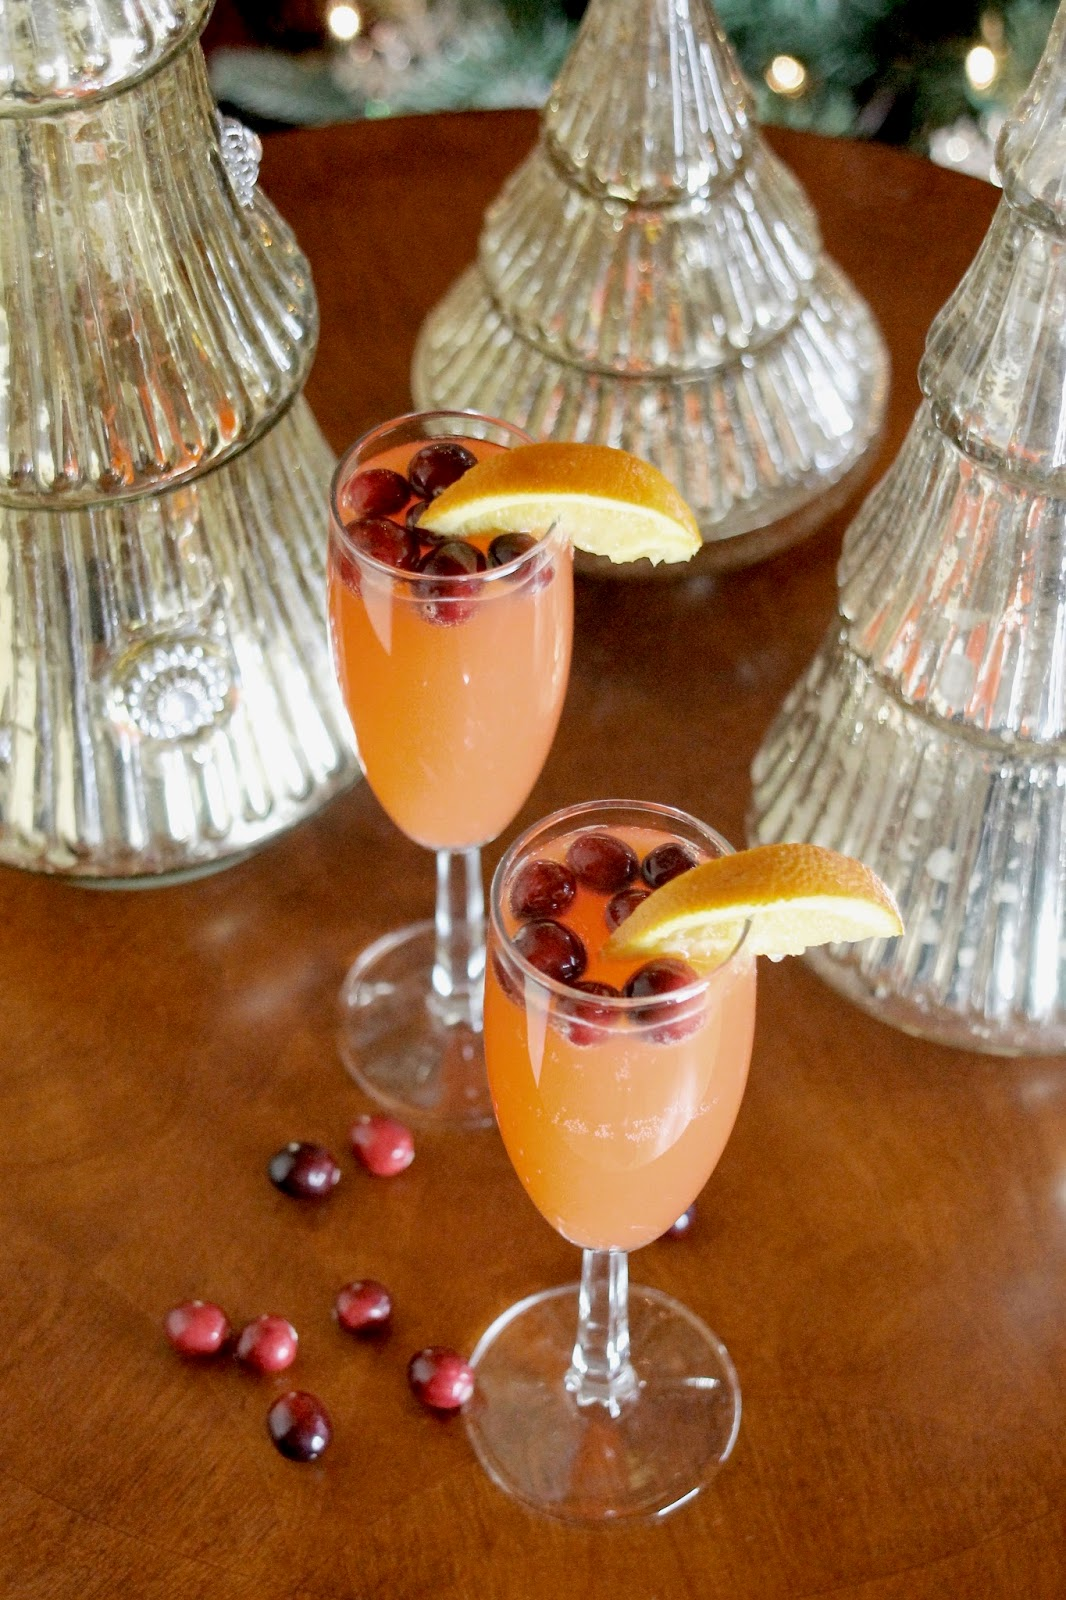 Make This: An Easy, Festive Champagne Cocktail